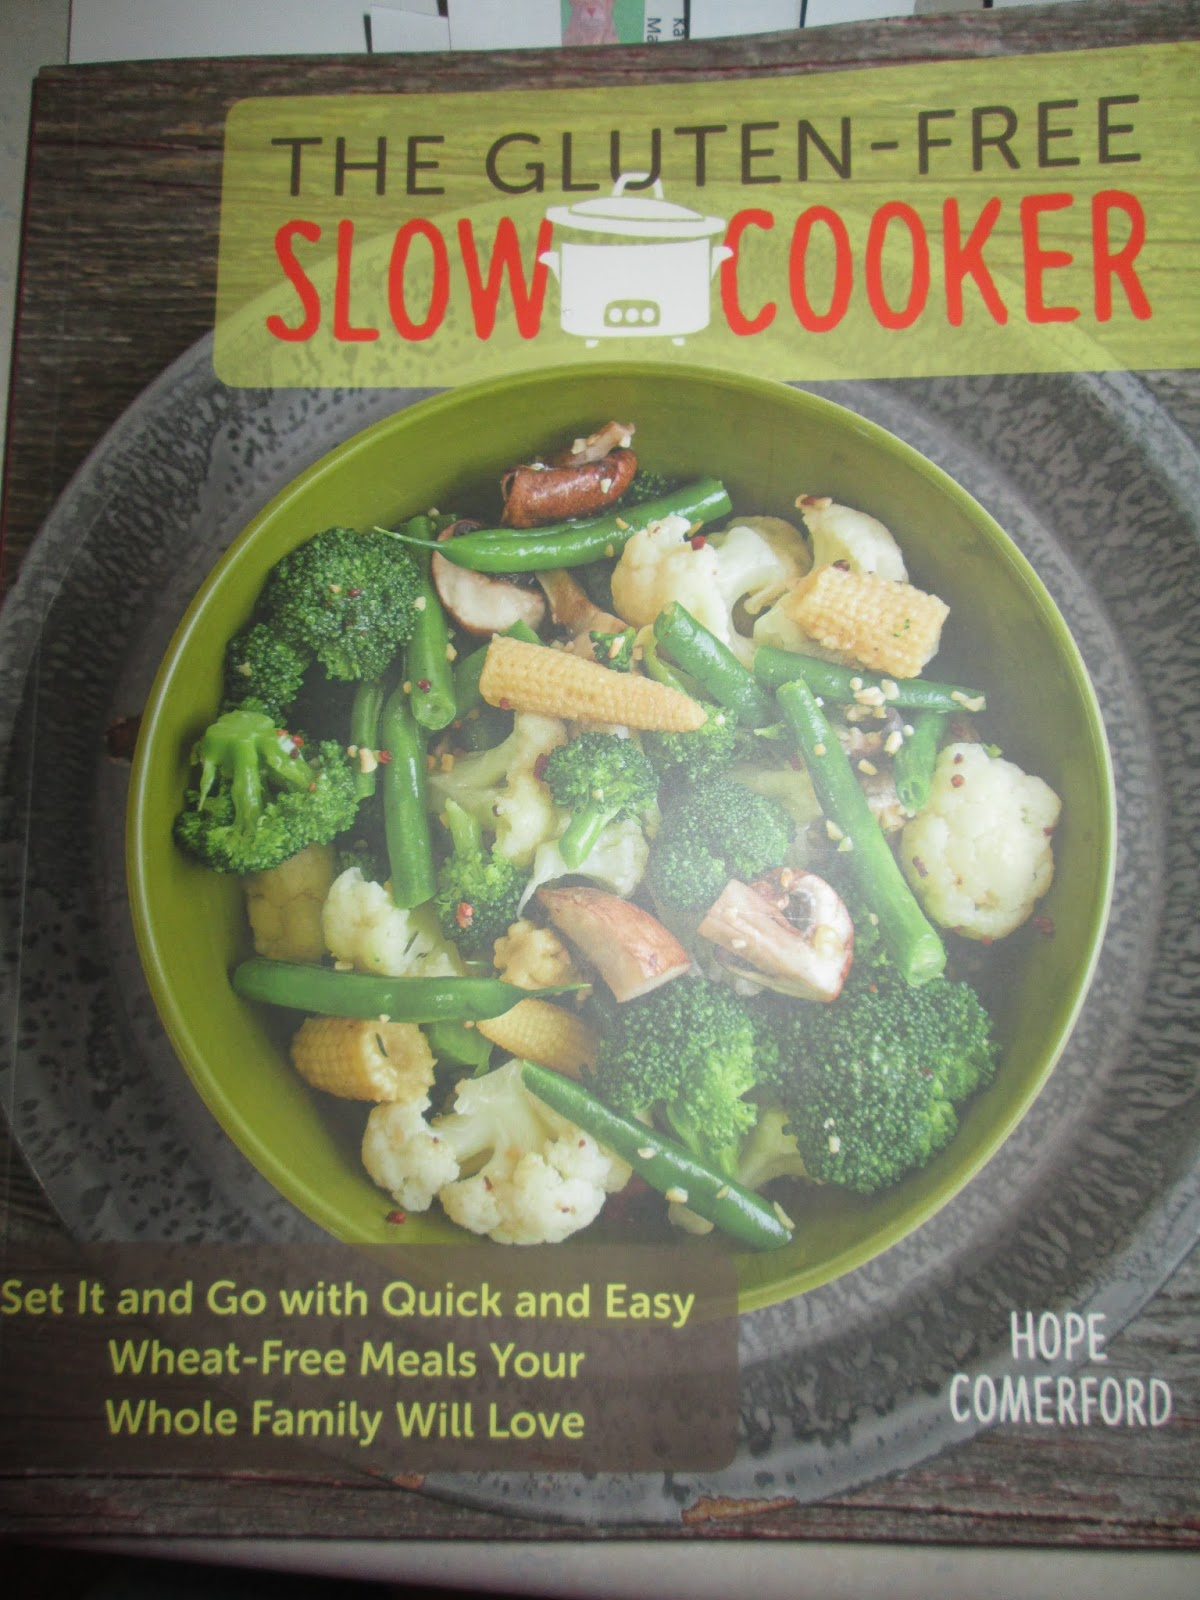 the glutenfree slow cooker set it and go with quick and easy wheatfree meals your whole family will love